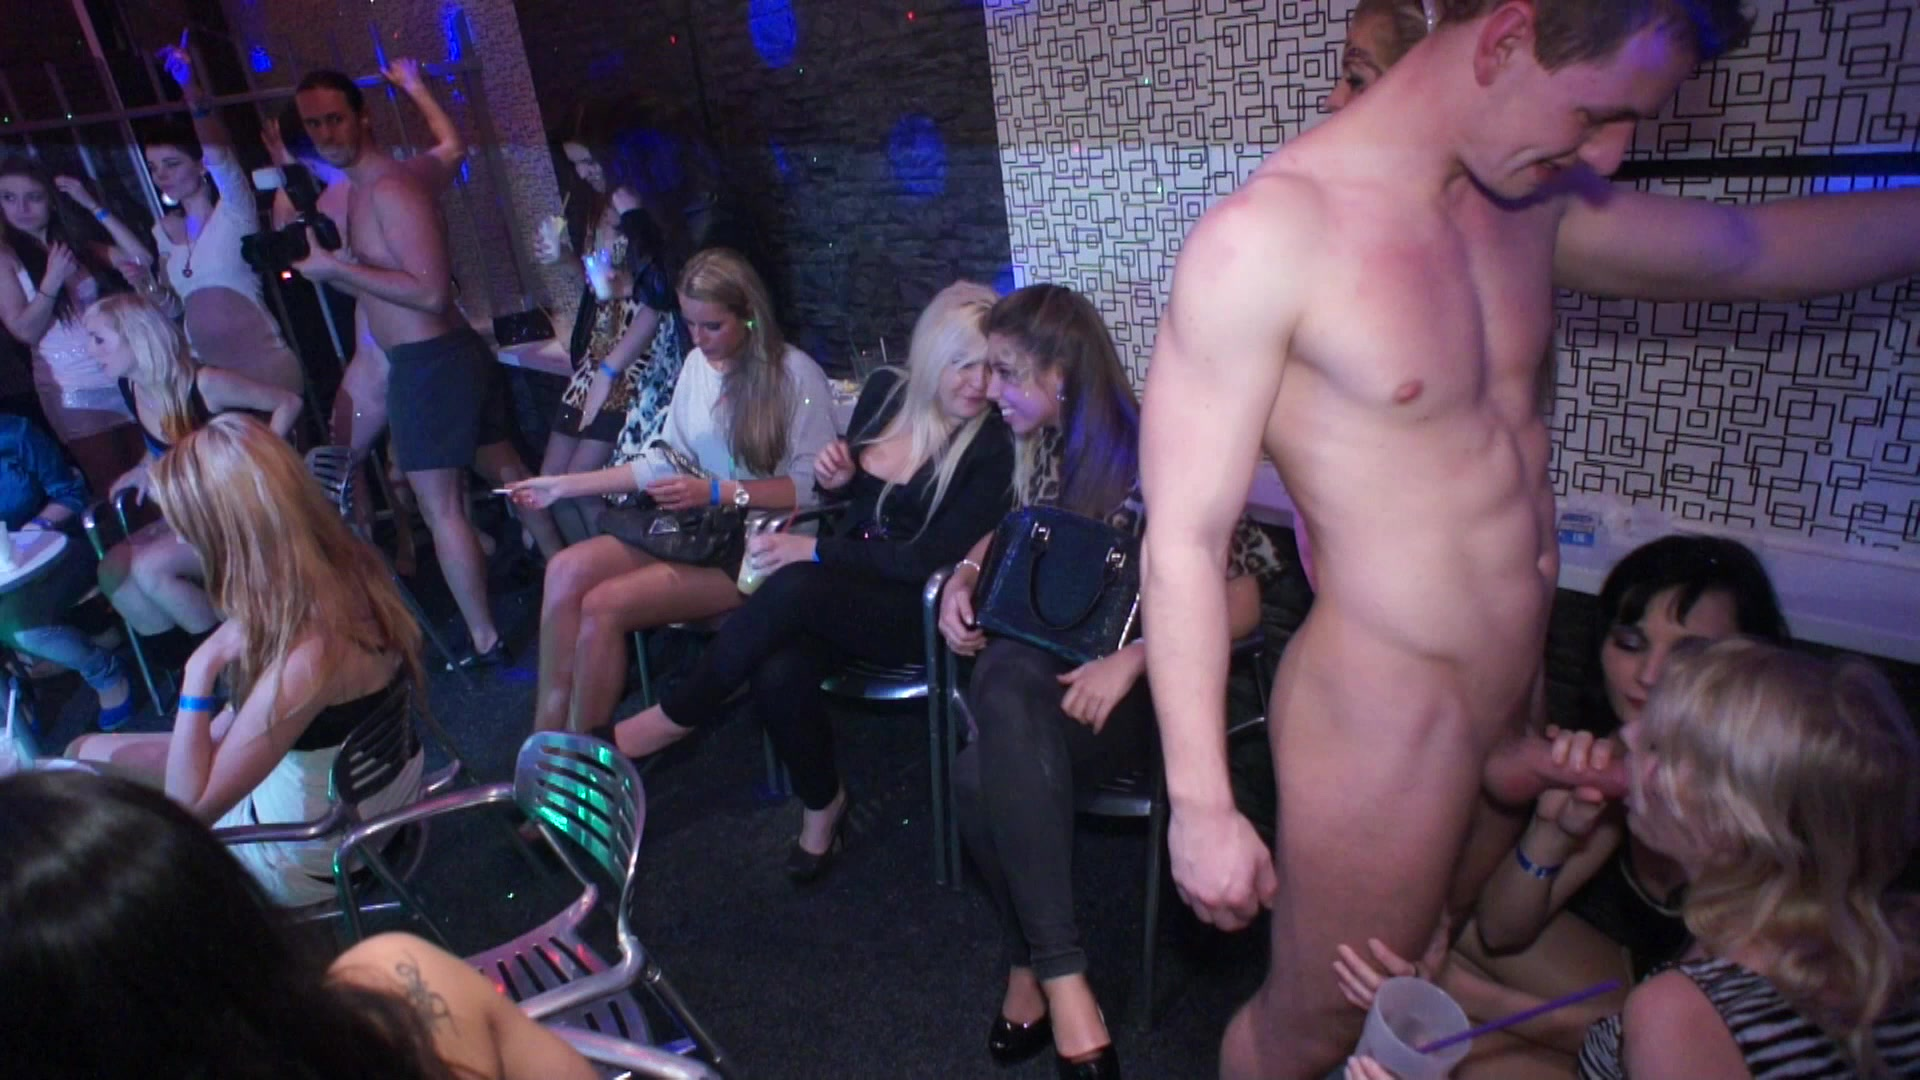 Virgin threesome party 7 2014 - 2 part 5